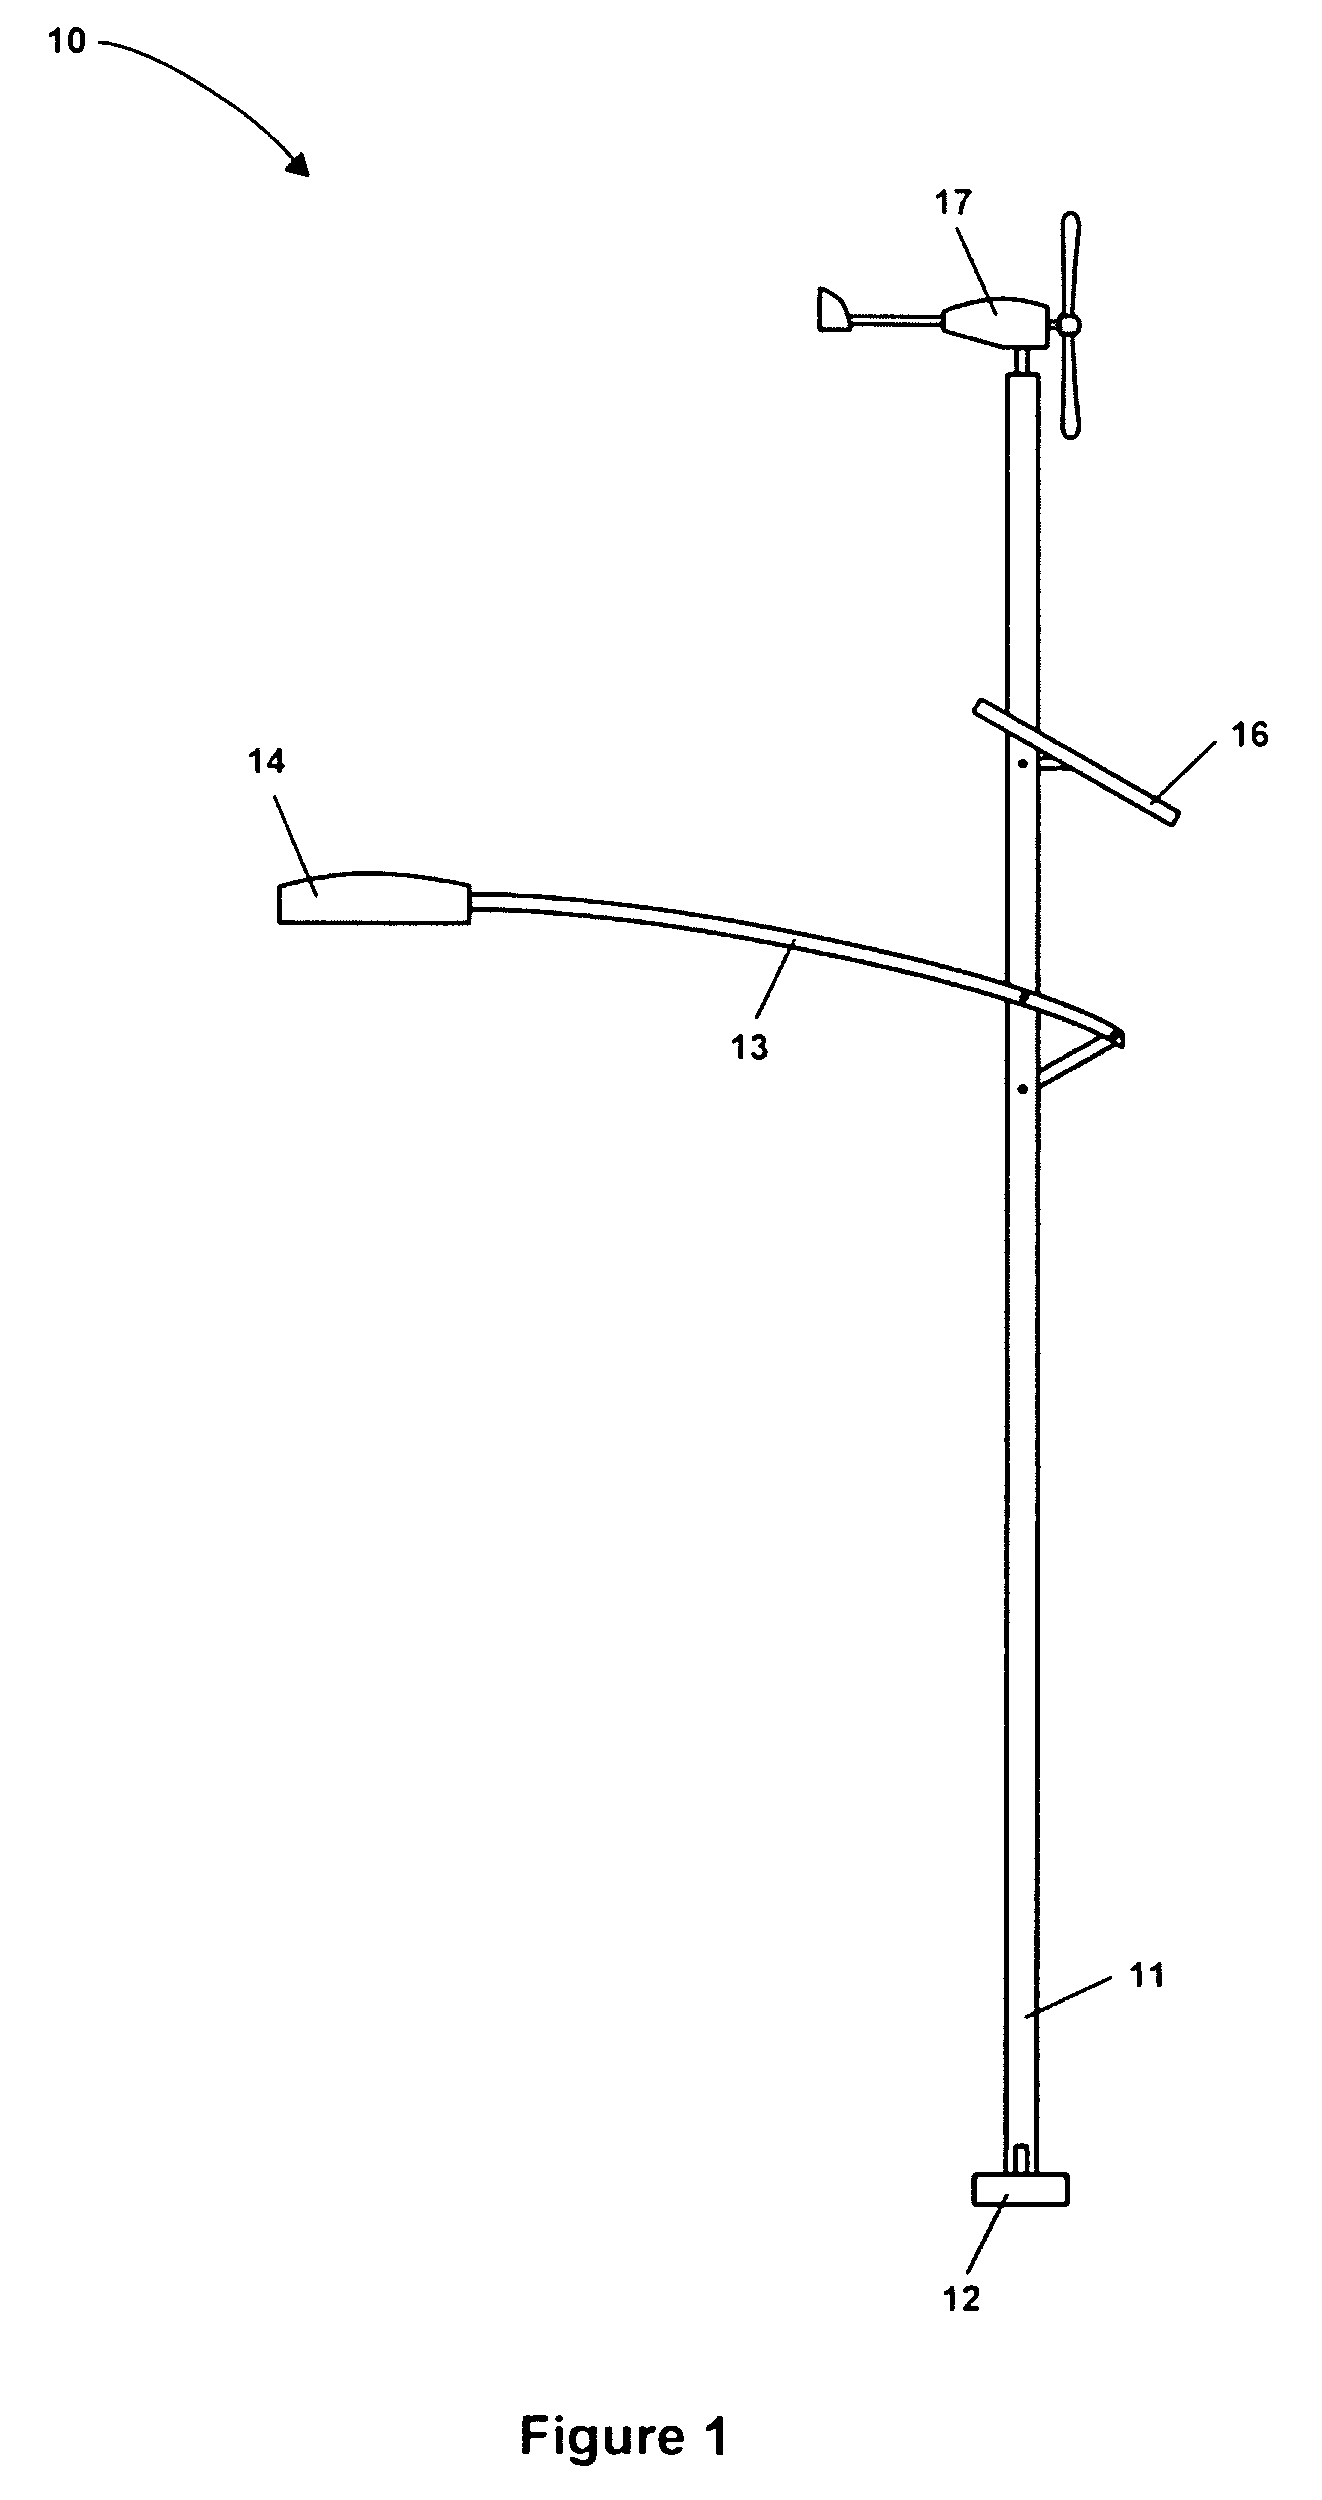 Low Pressure Sodium Vapour Lamp Patent Us20090273922 Street Light Utilizing Combination